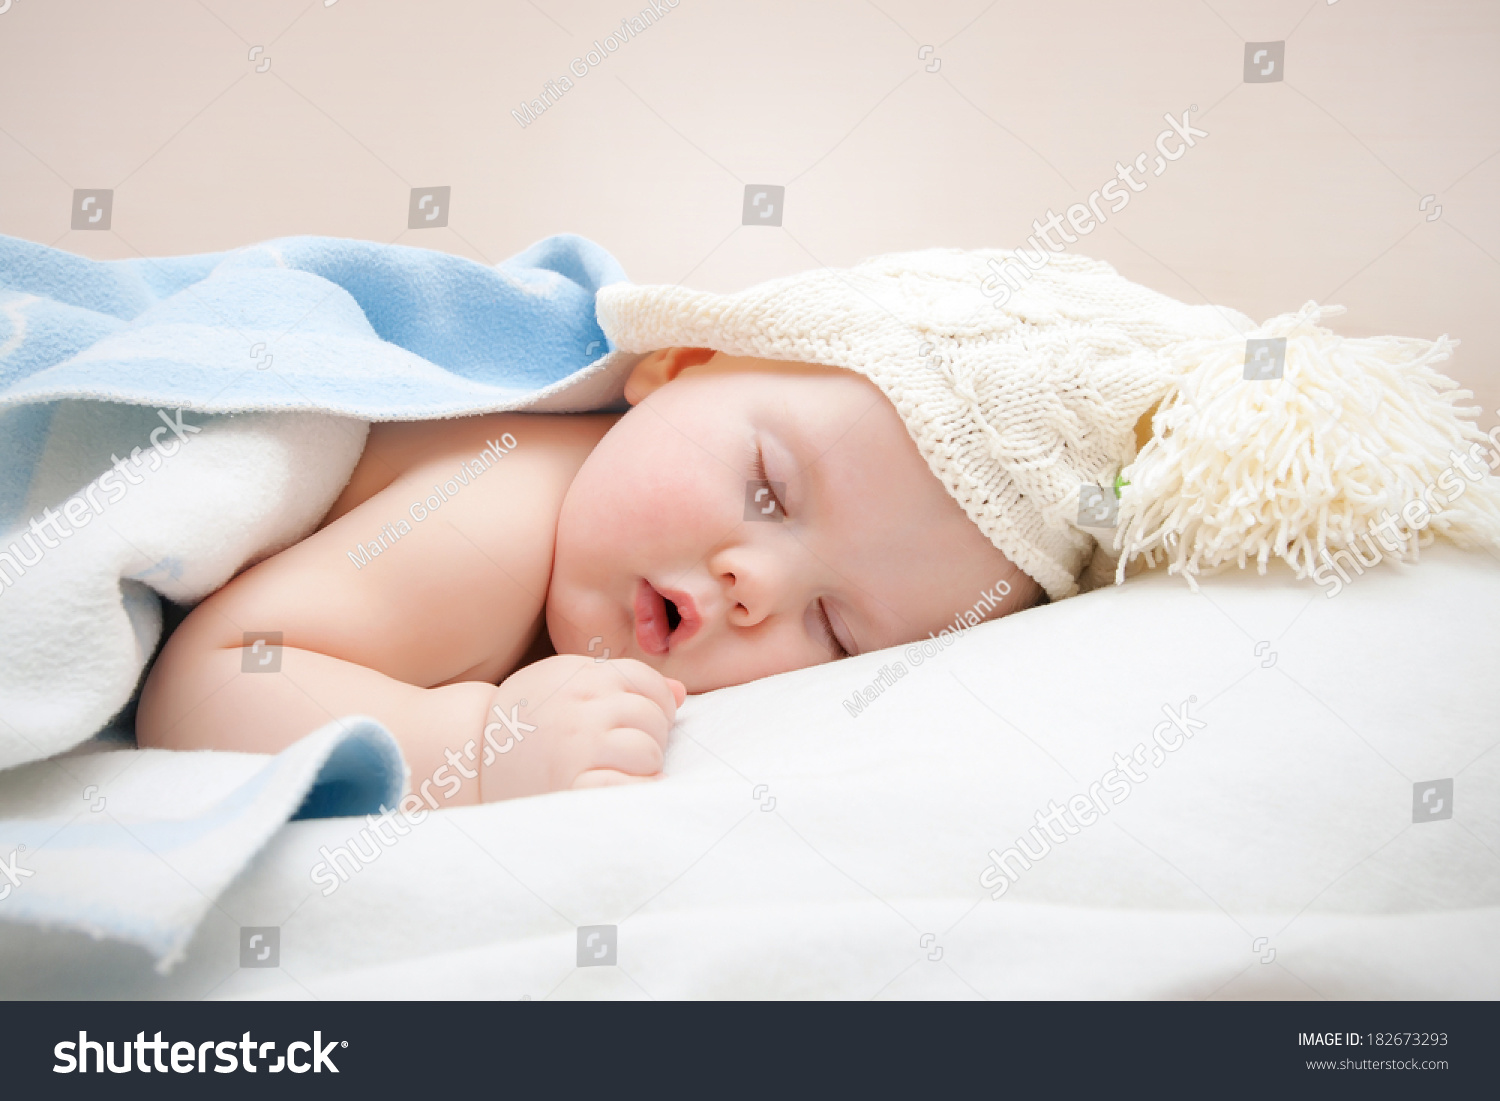 cute sleeping baby knitted hat pompom stock photo (edit now